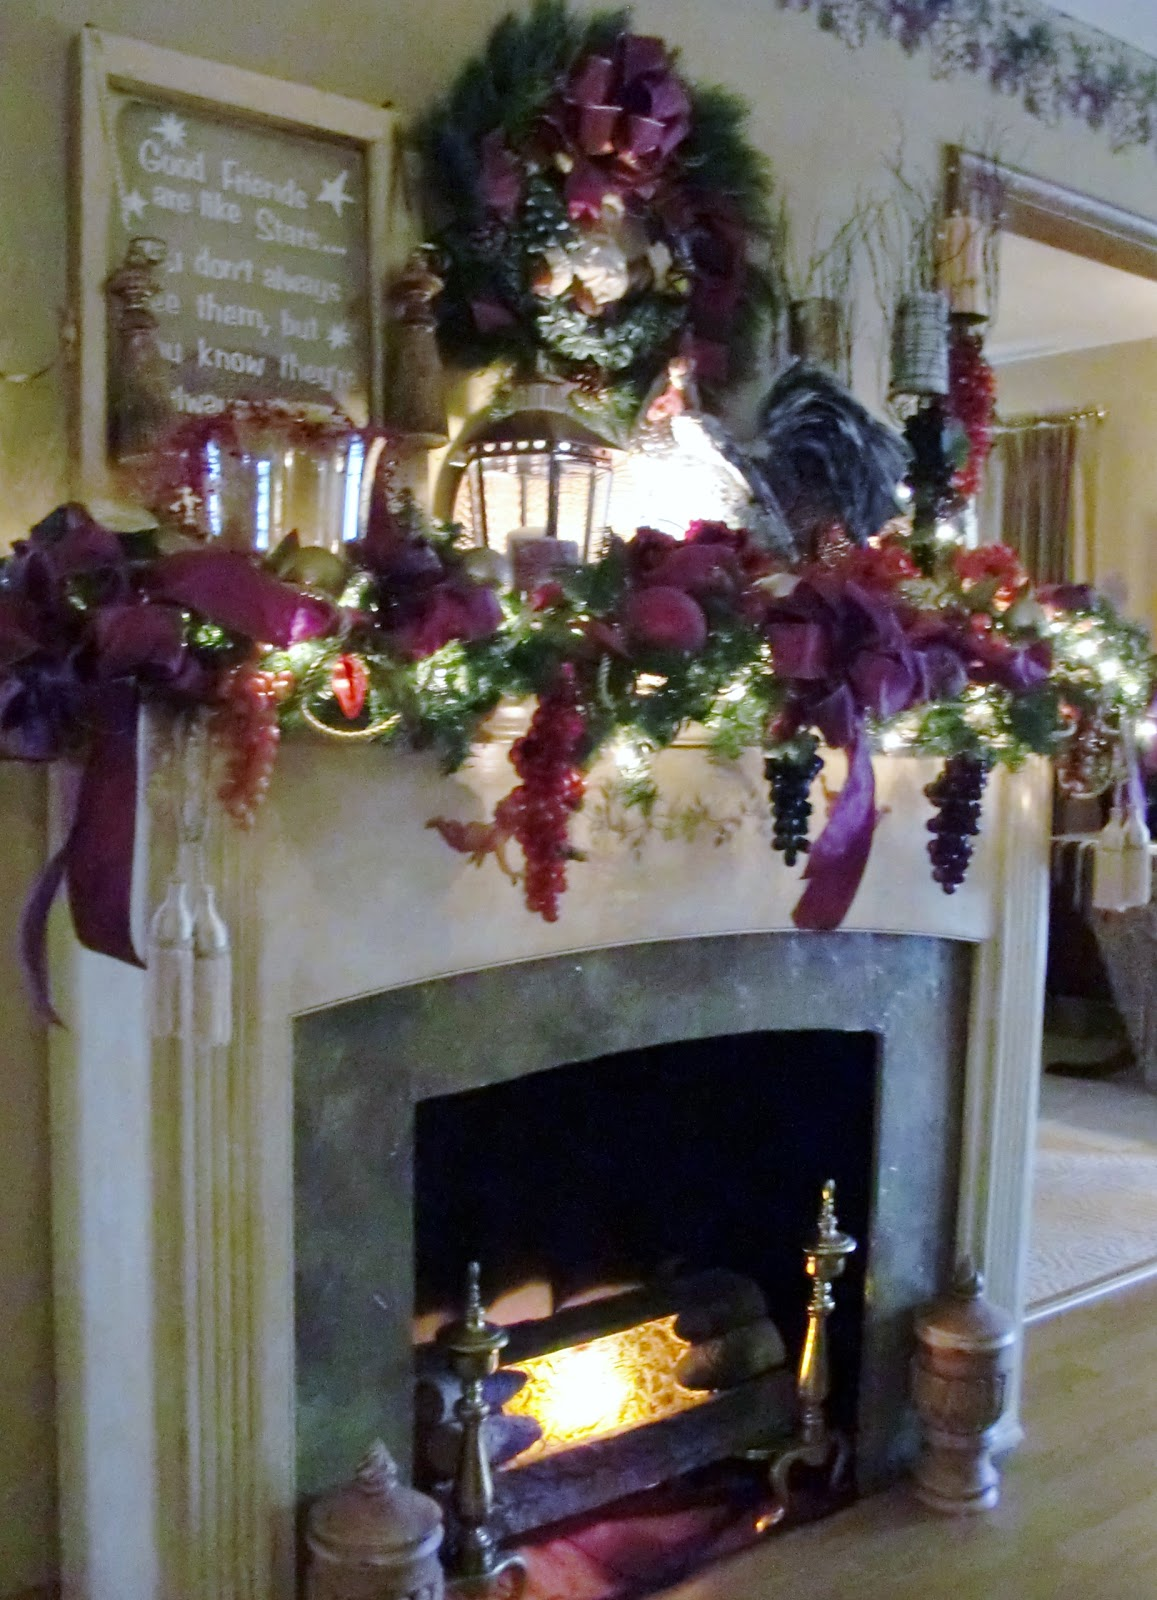 Creative Home Decorating!: Christmas Faux Fireplace Mantel!